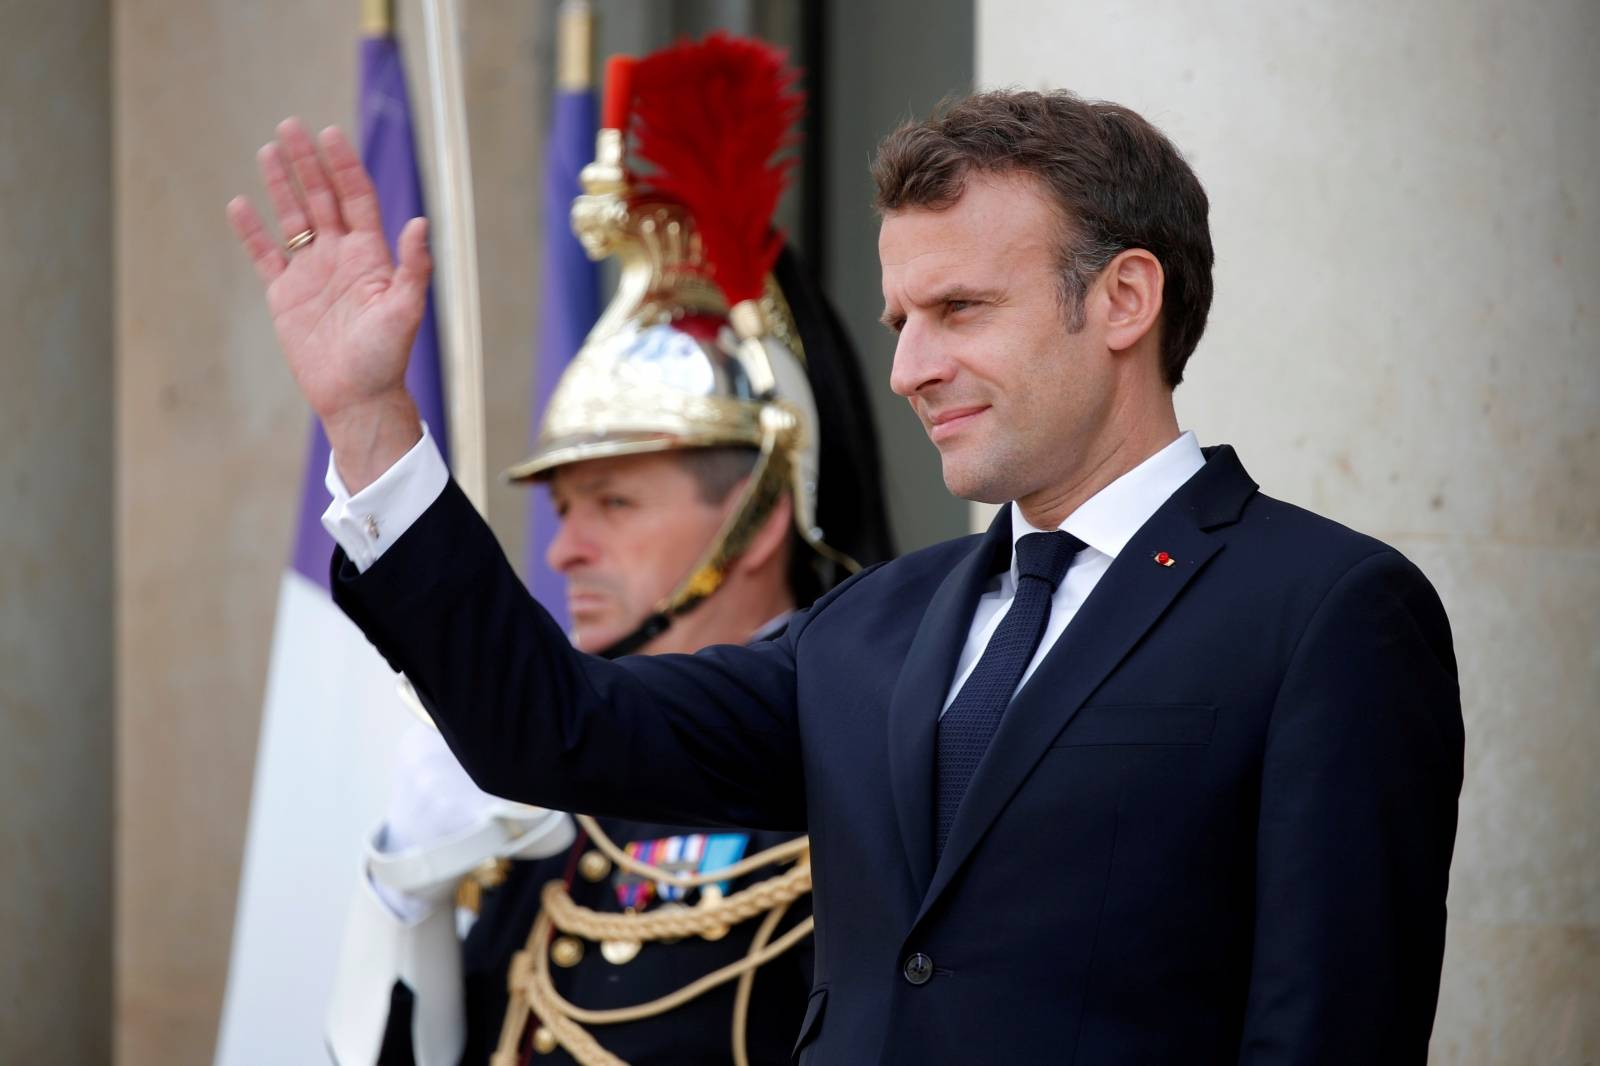 FILE PHOTO: French President Emmanuel Macron waves at the Elysee Palace in Paris